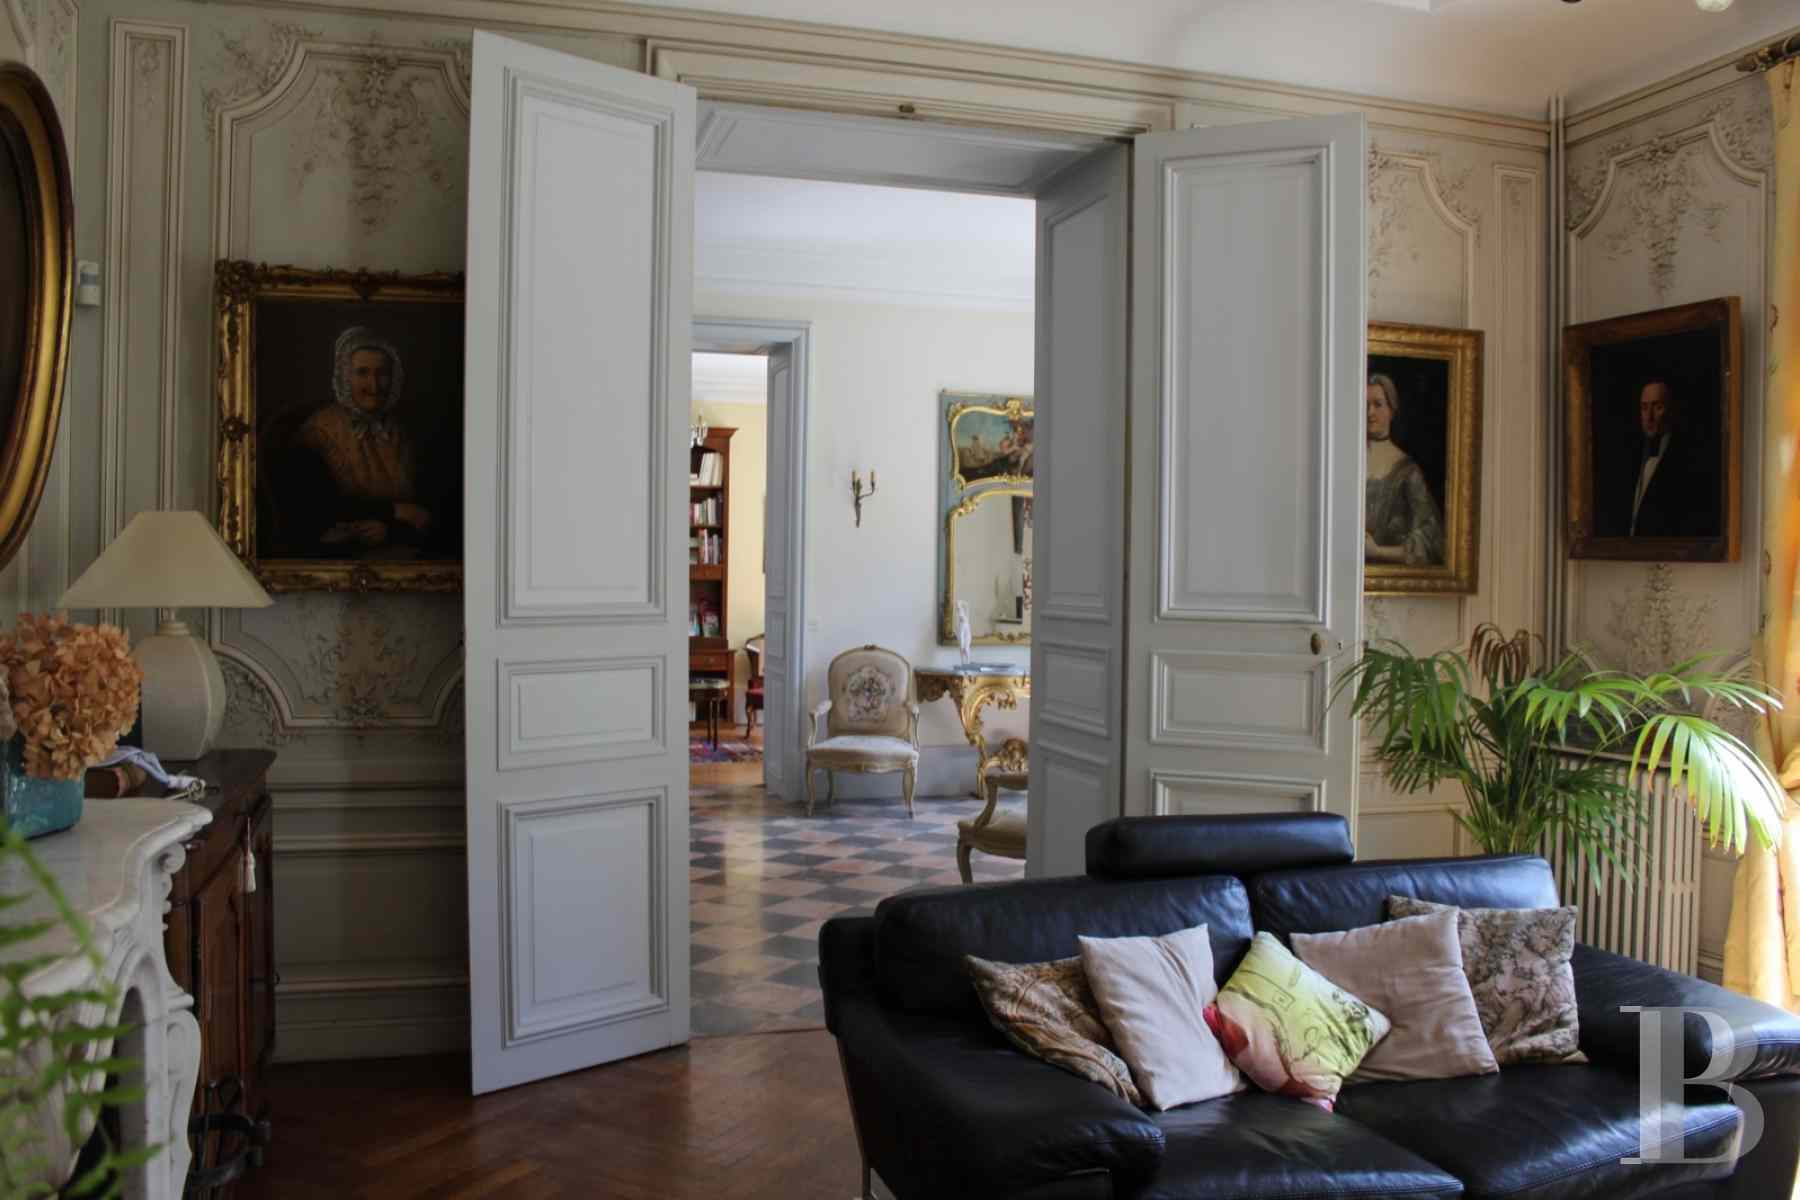 France mansions for sale center val de loire tours listed - 14 zoom